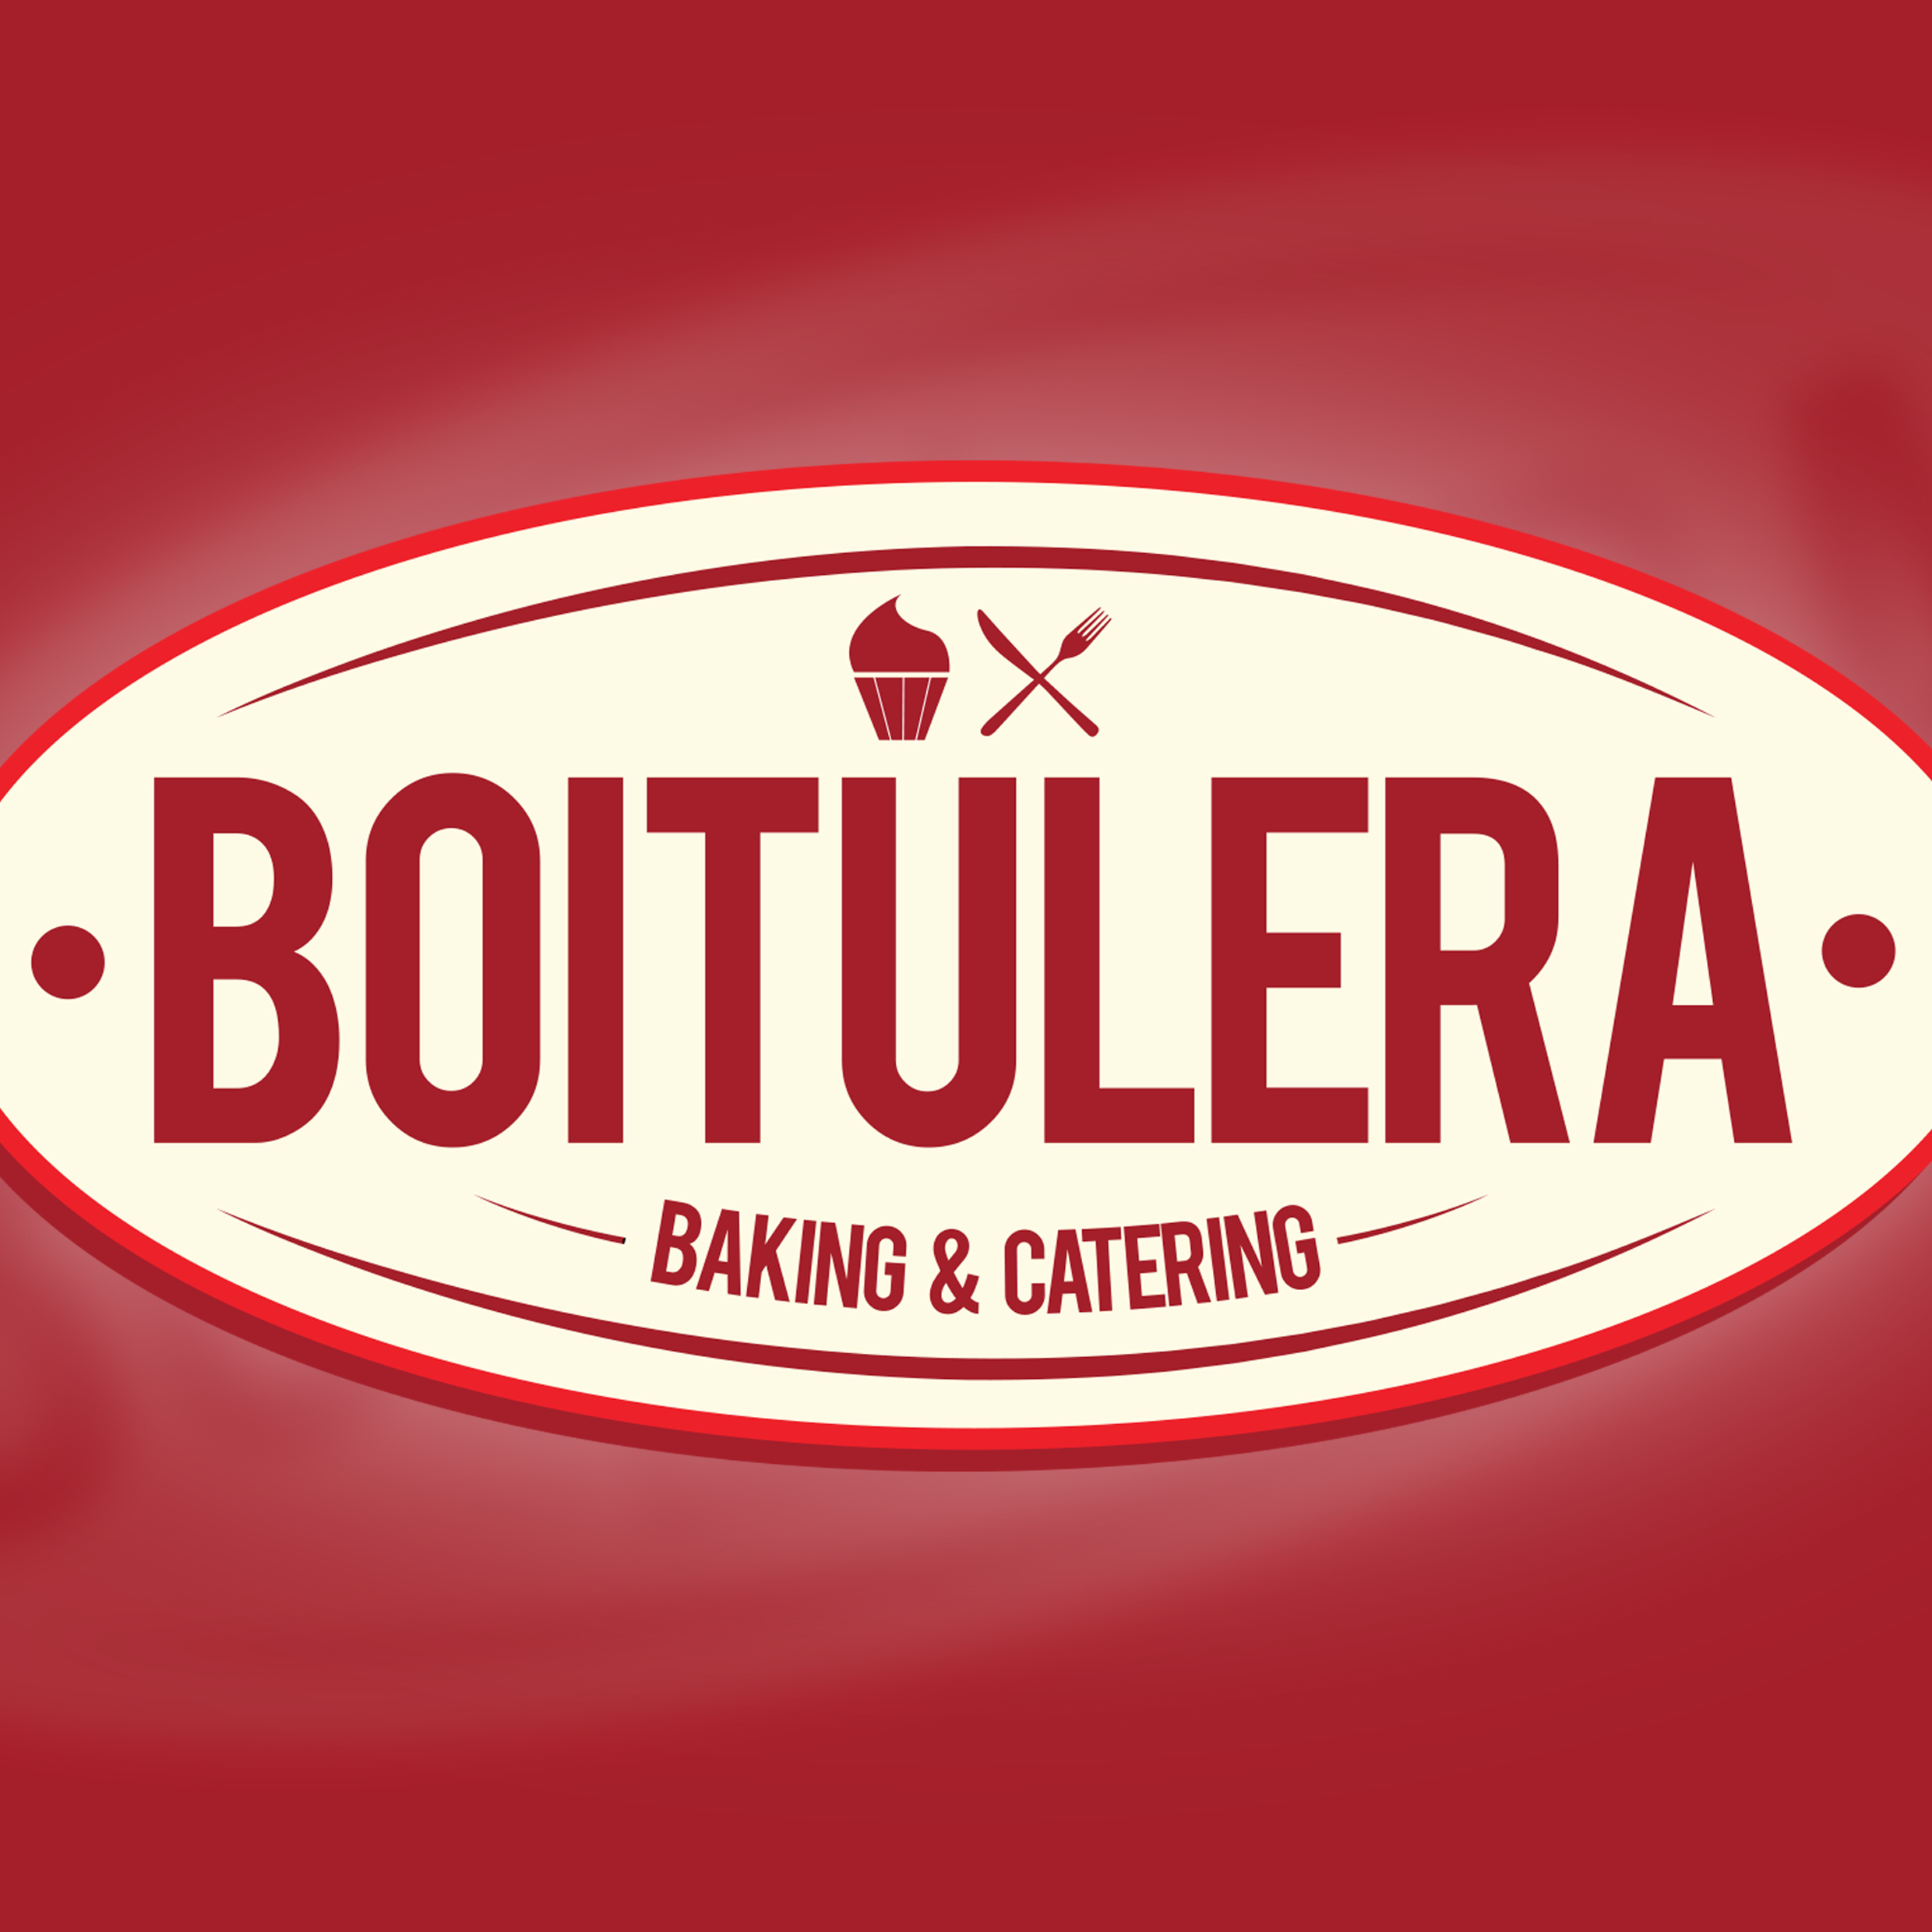 boitulera baking and catering logo and business card design